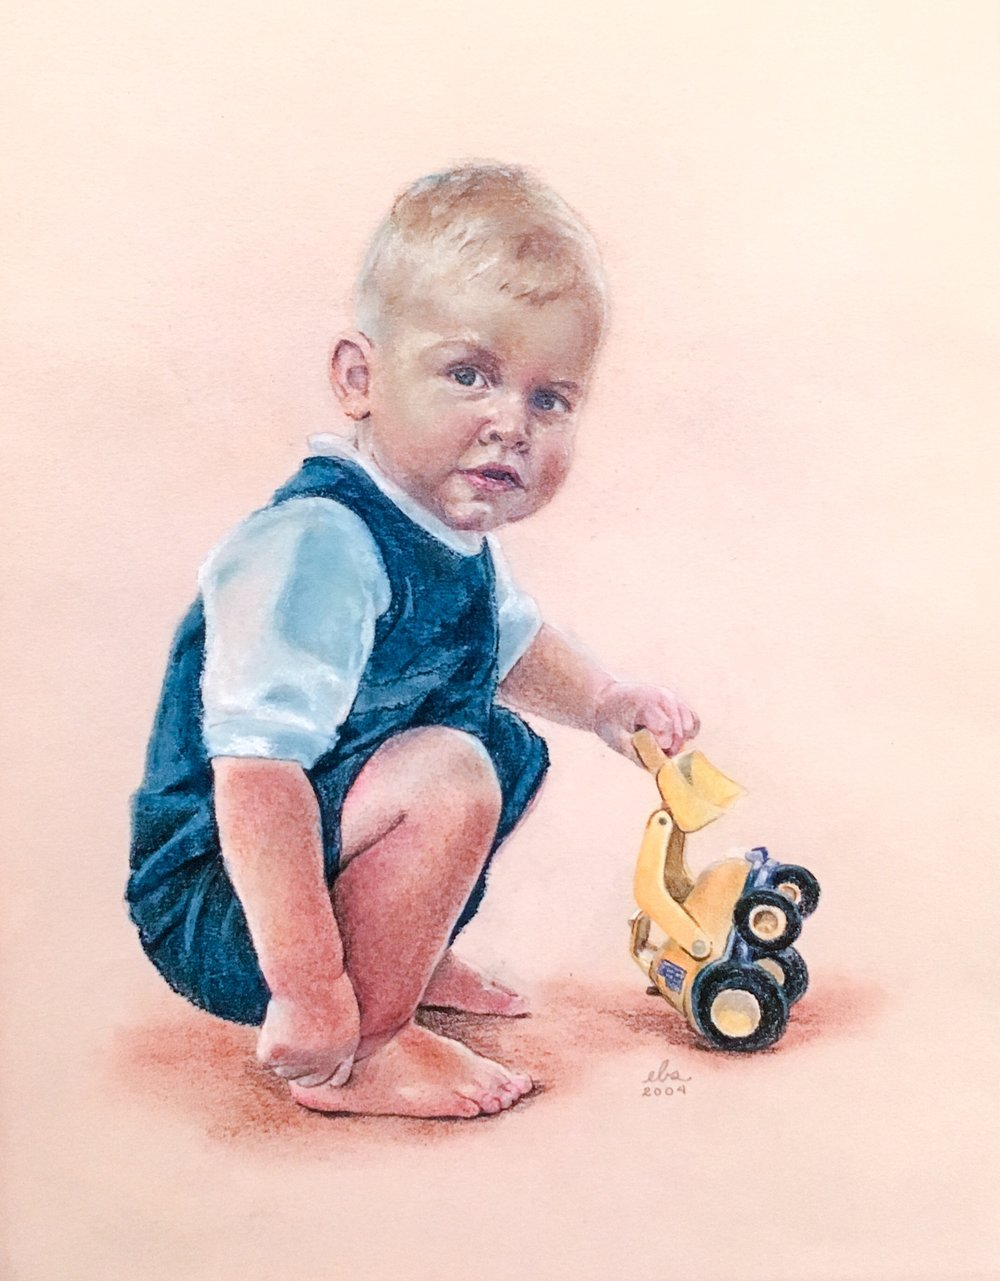 Alexander , 2004. Pastels and colored pencil. Copyright Designs by EBS